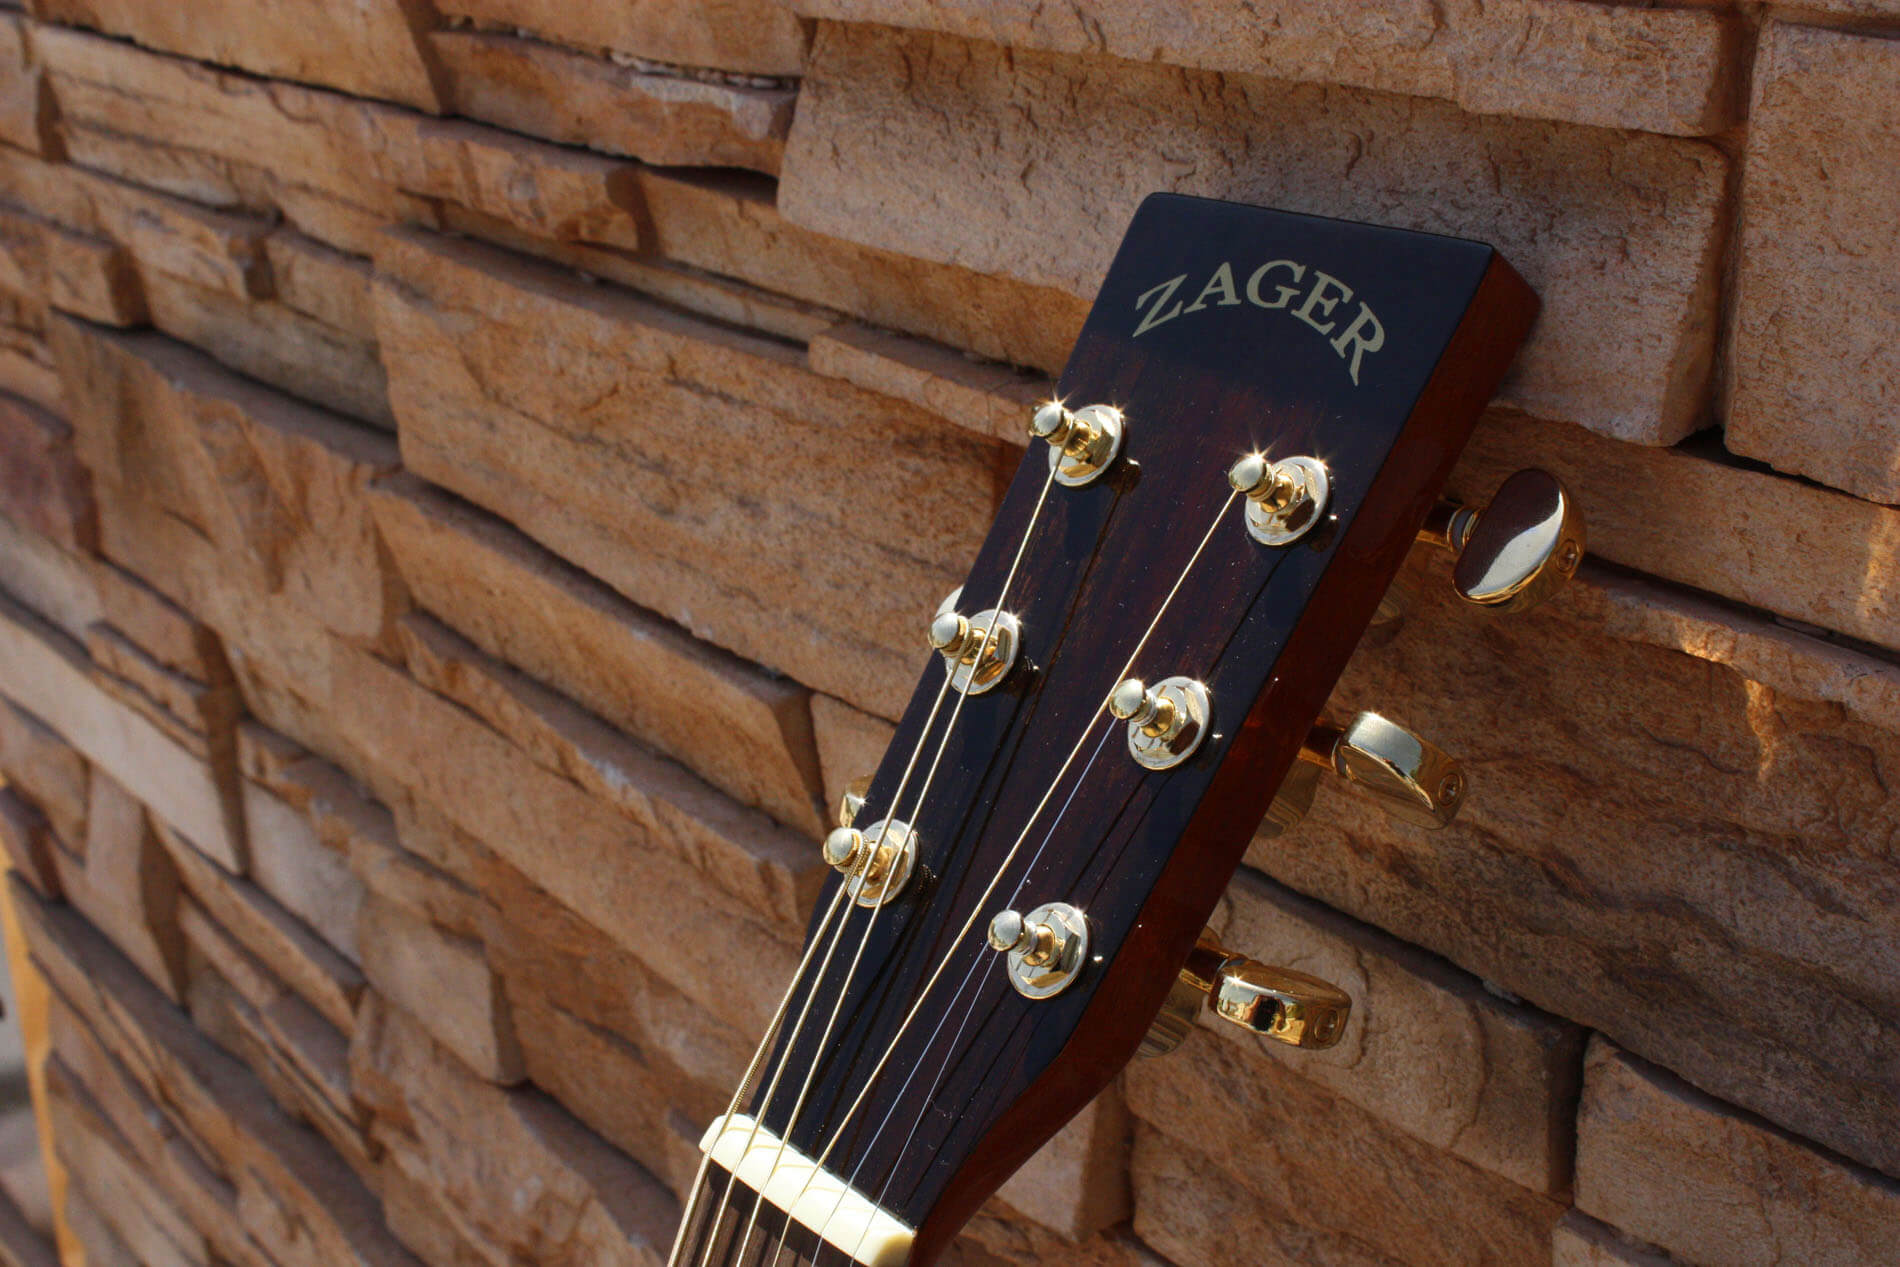 Zager Guitars Reviewed